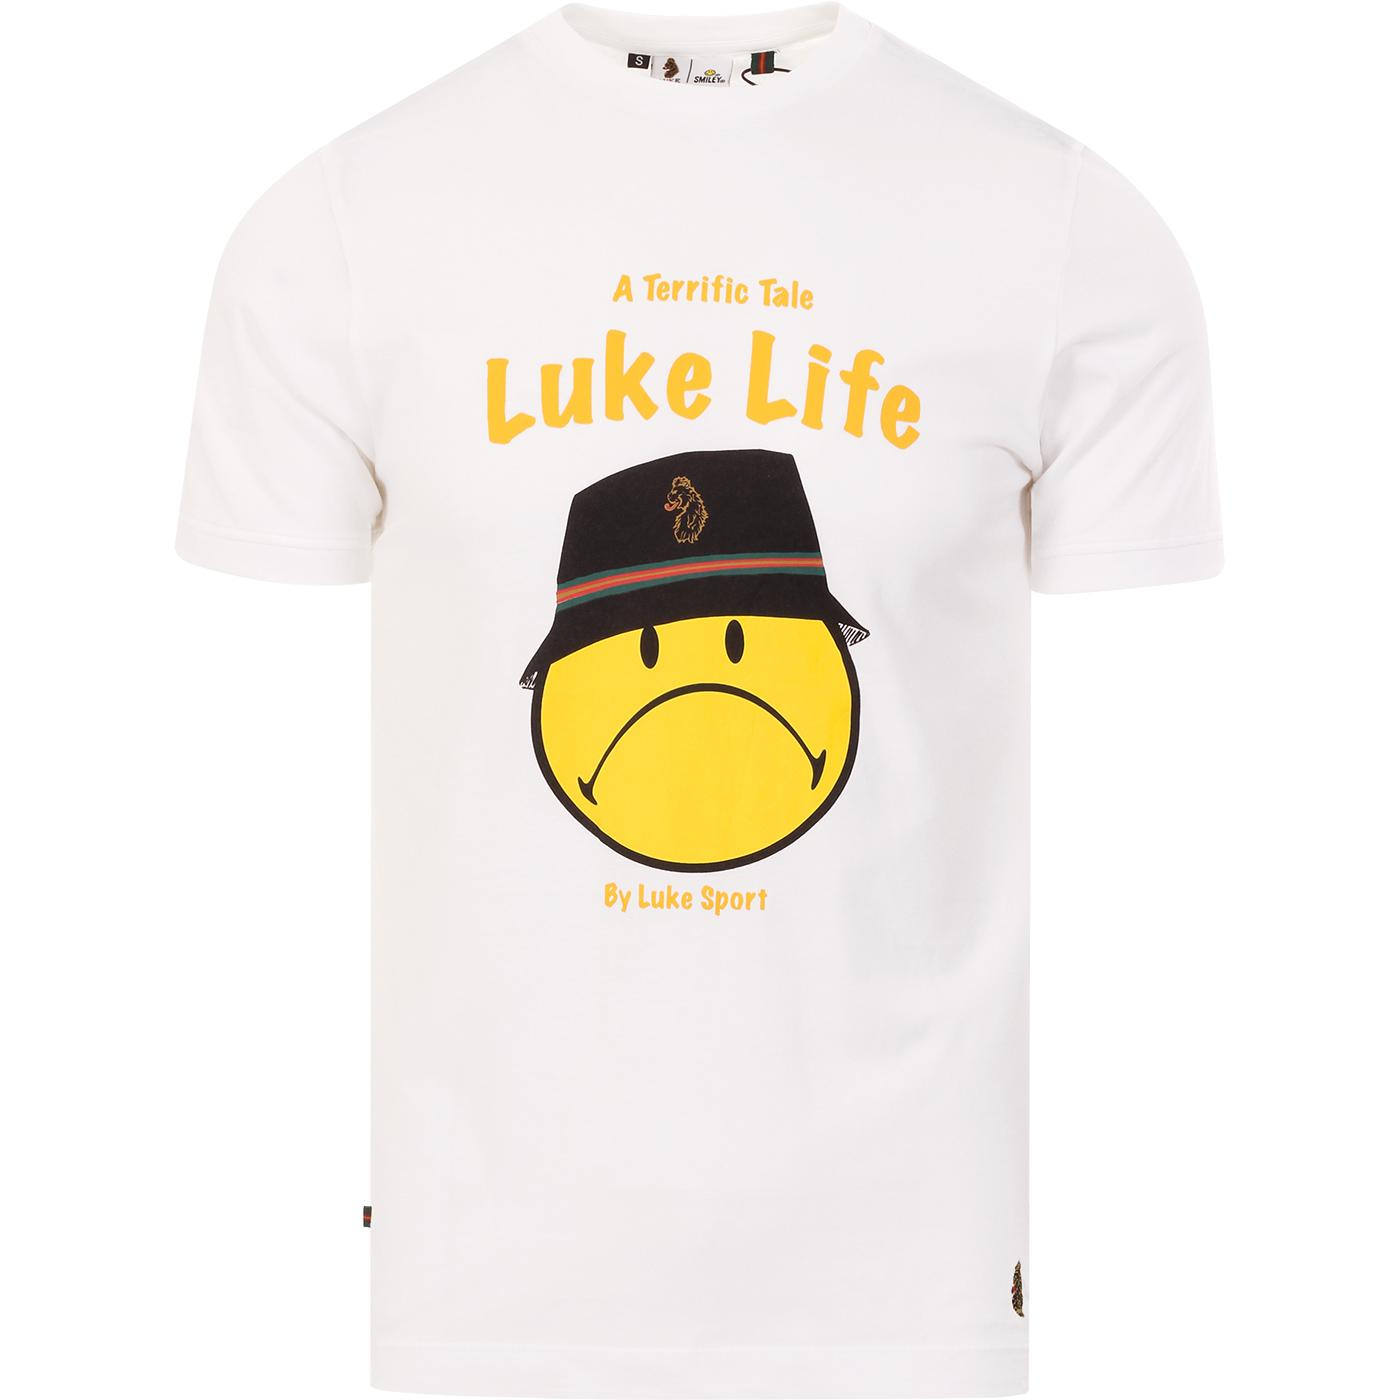 LUKE x SMILEY Luke Life Retro Rave Tee (White)